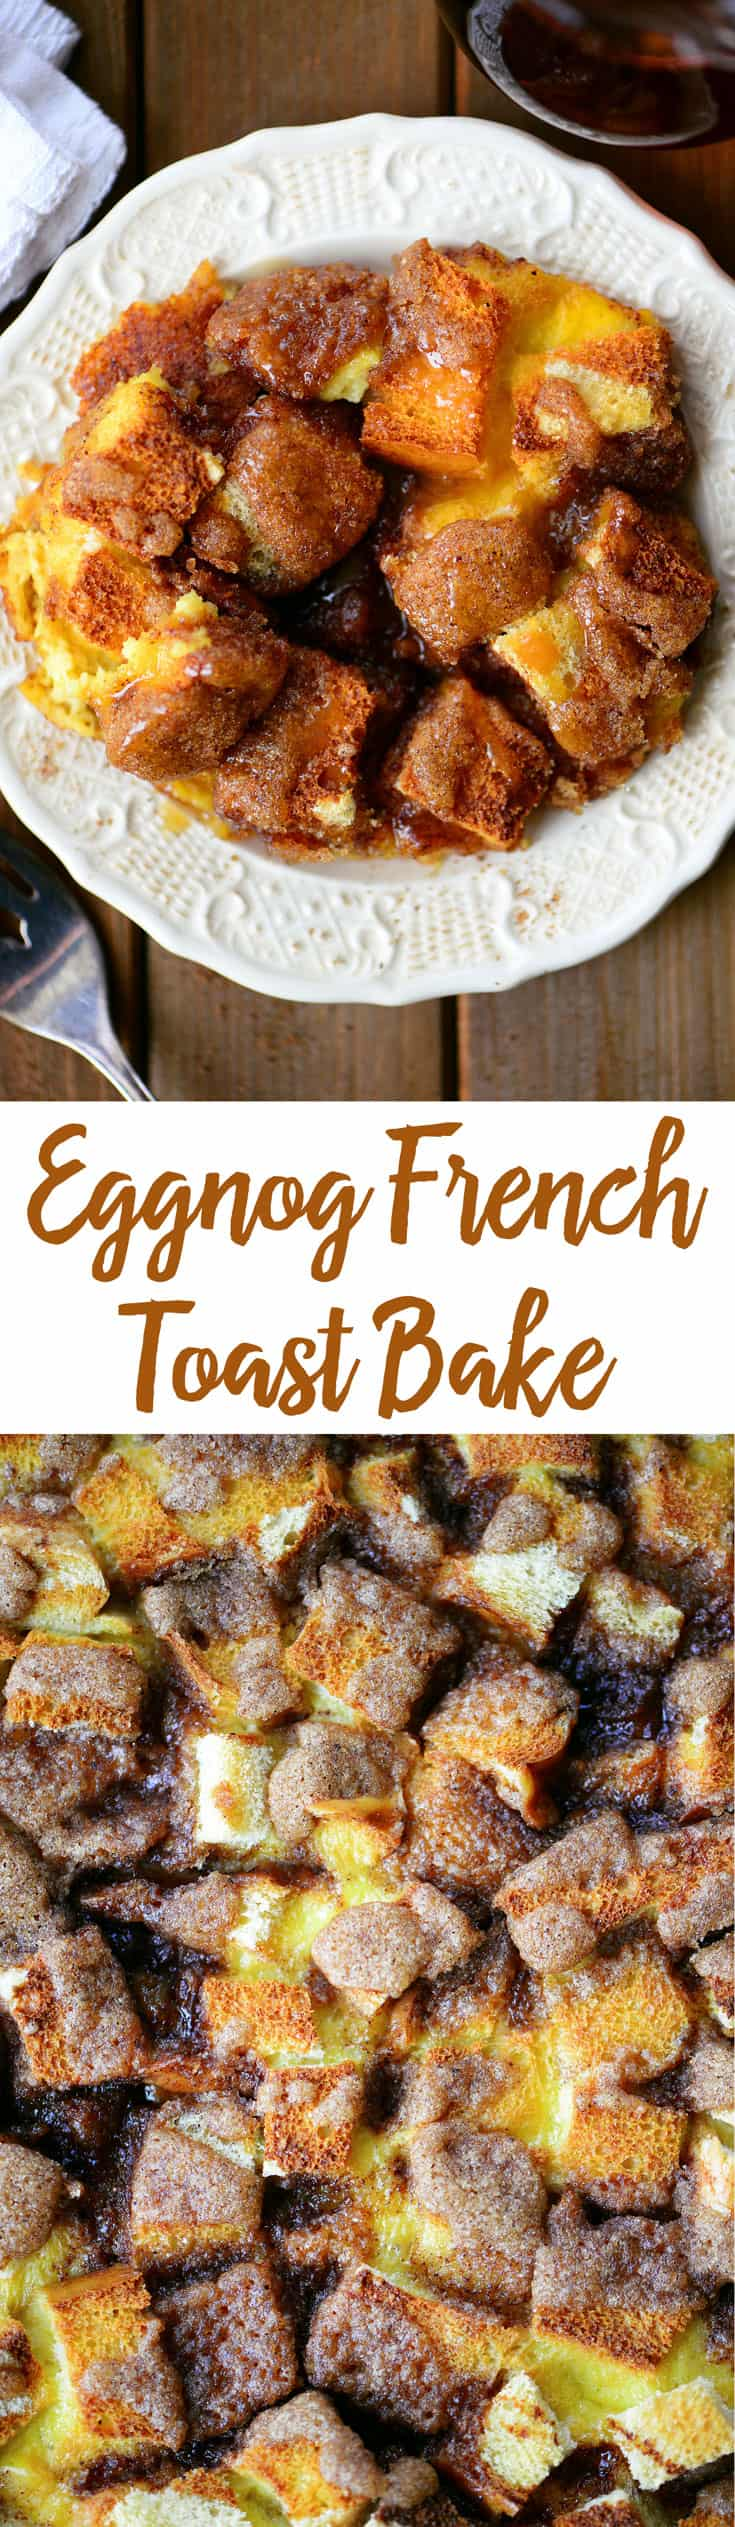 This Eggnog French Toast Bake is the perfect breakfast for overnight guests, holiday brunch, or Christmas morning! Its an easy French Toast Casserole recipe can even be prepared the night before and is a great way to feed the whole family in one fell swoop. #eggnog #frenchtoast #breakfast